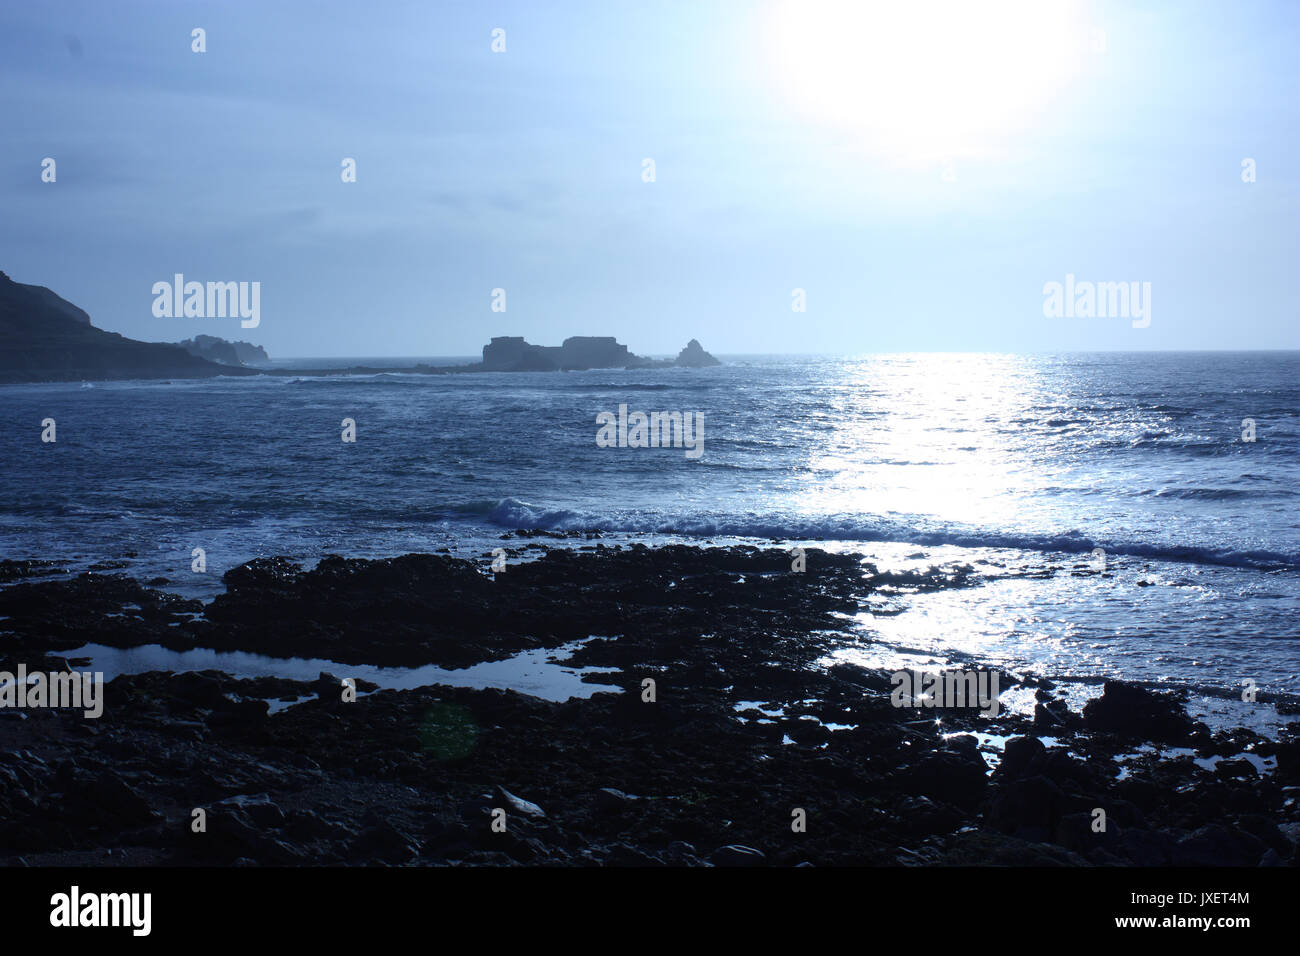 British Channel Islands. Alderney. View of coast and distant Fort Clonque in bright early evening sun. Stock Photo